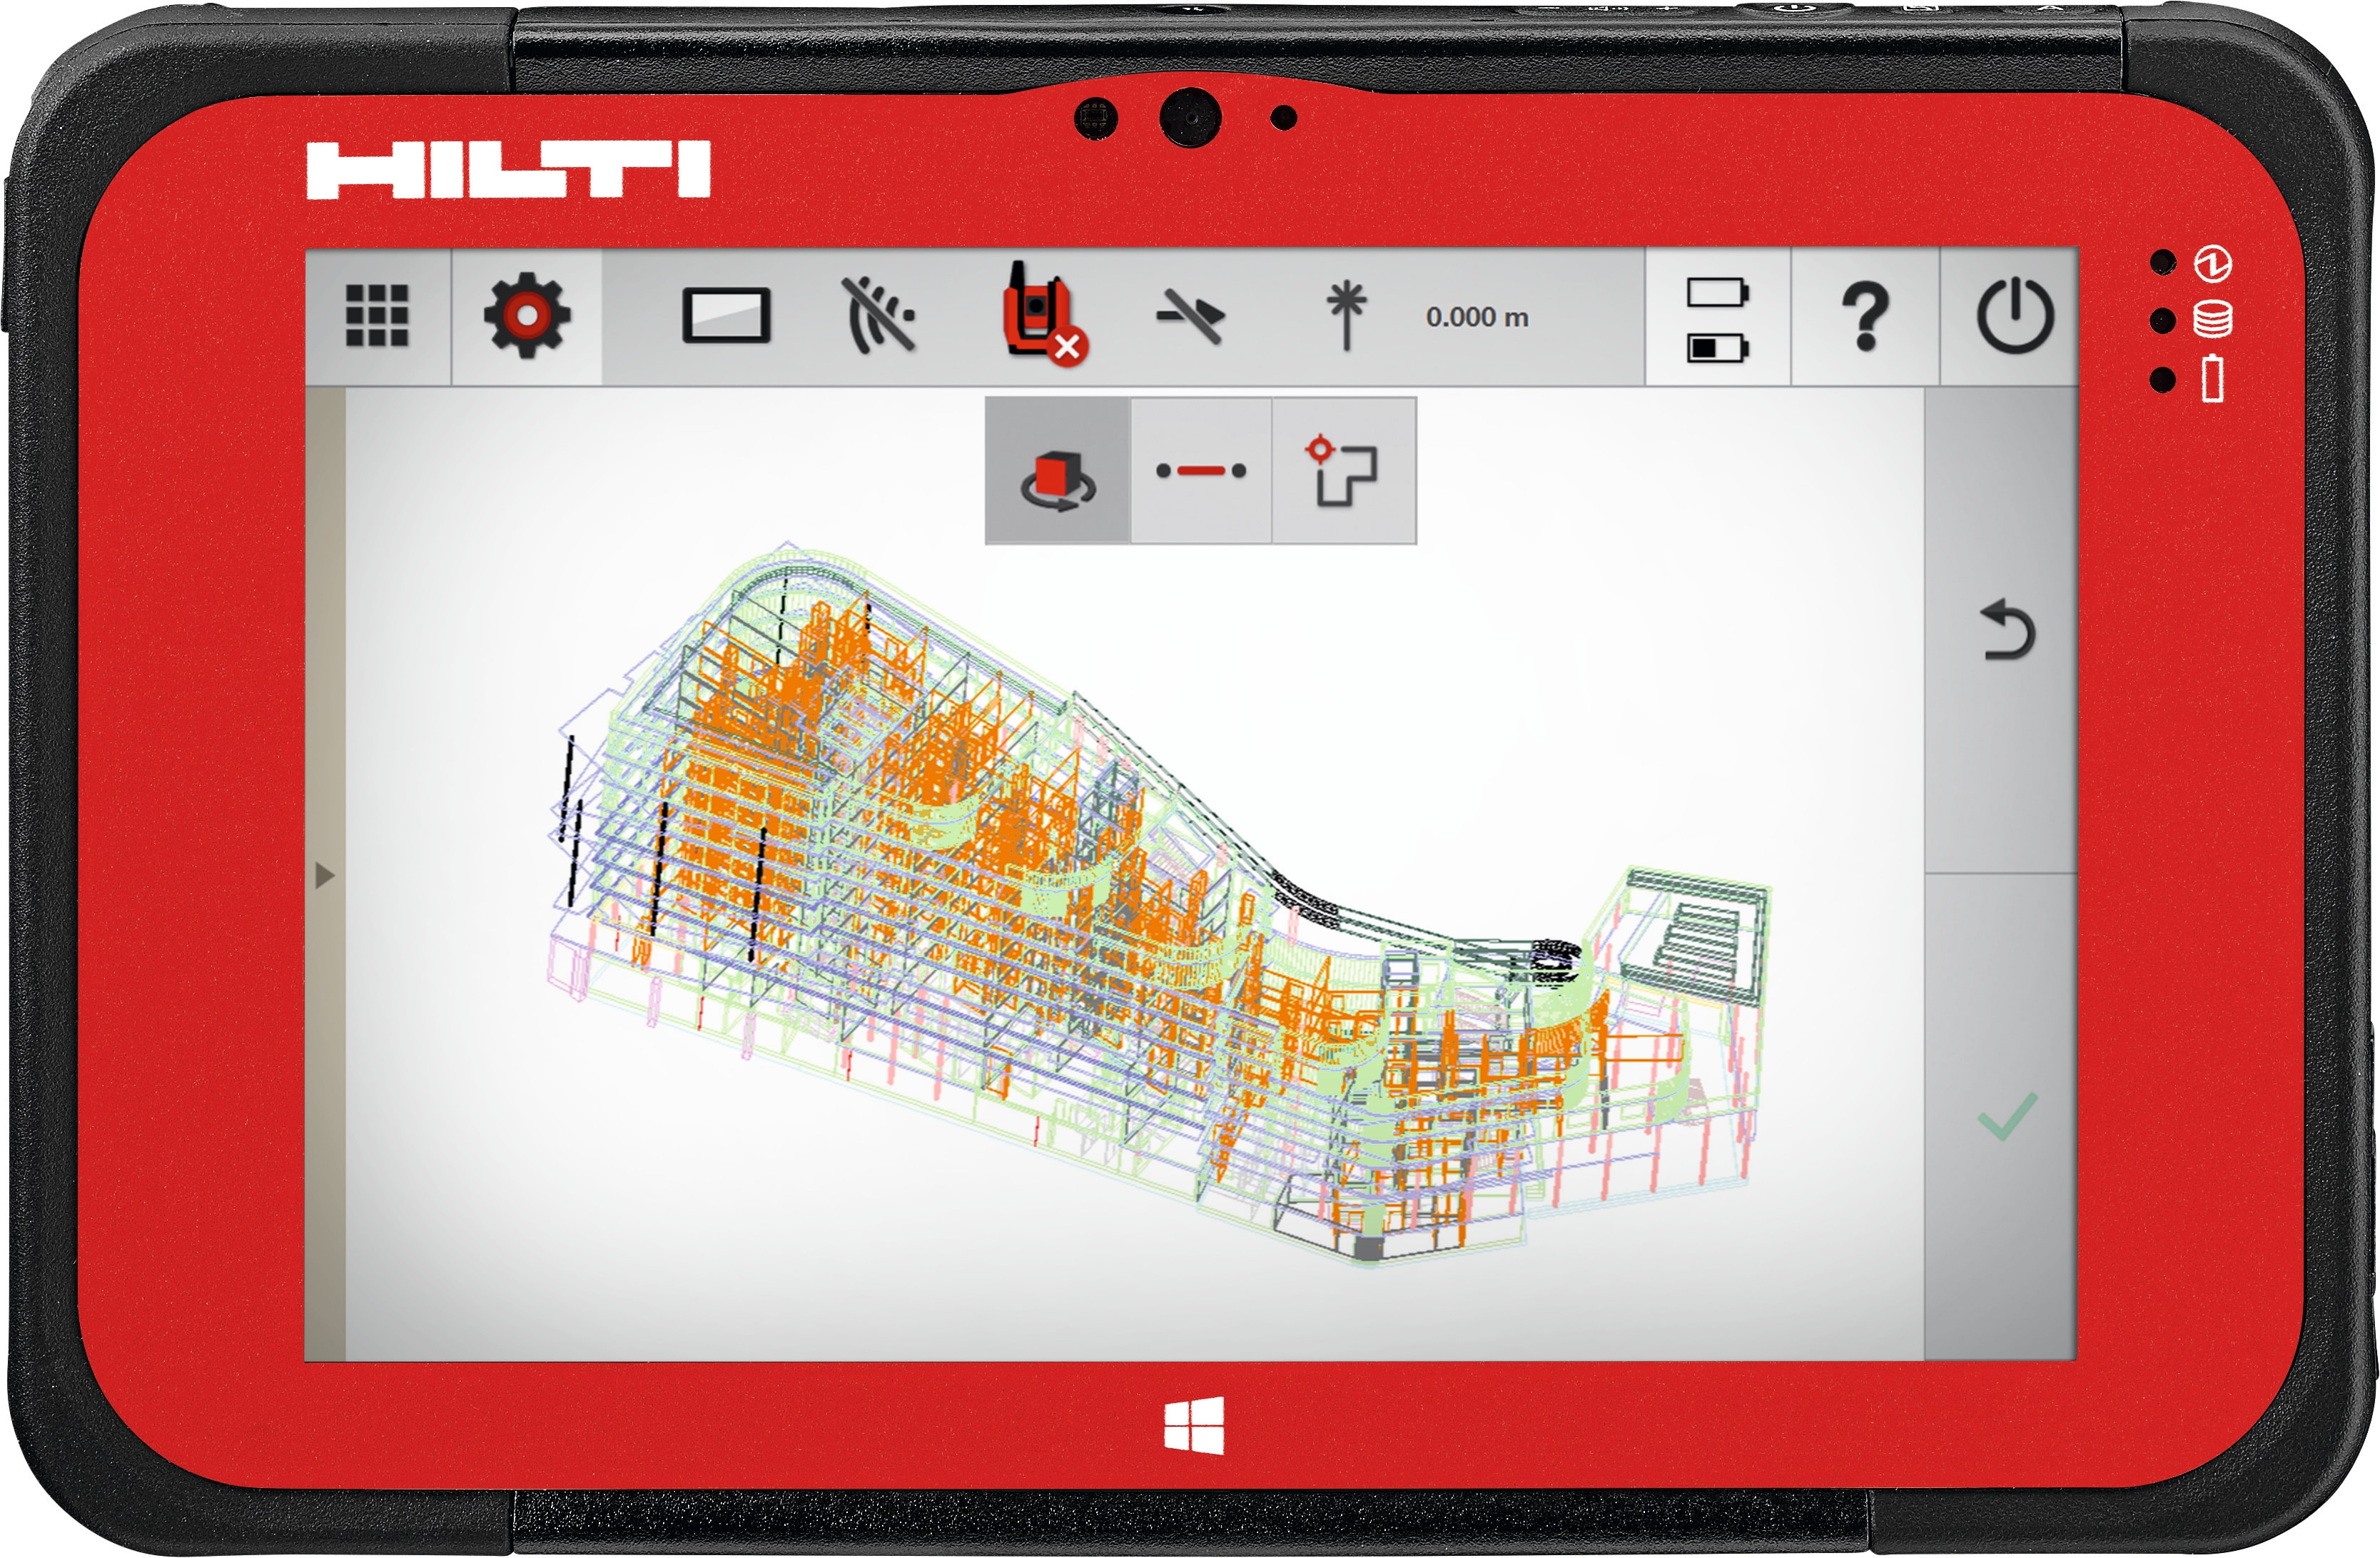 Hilti construction layout software